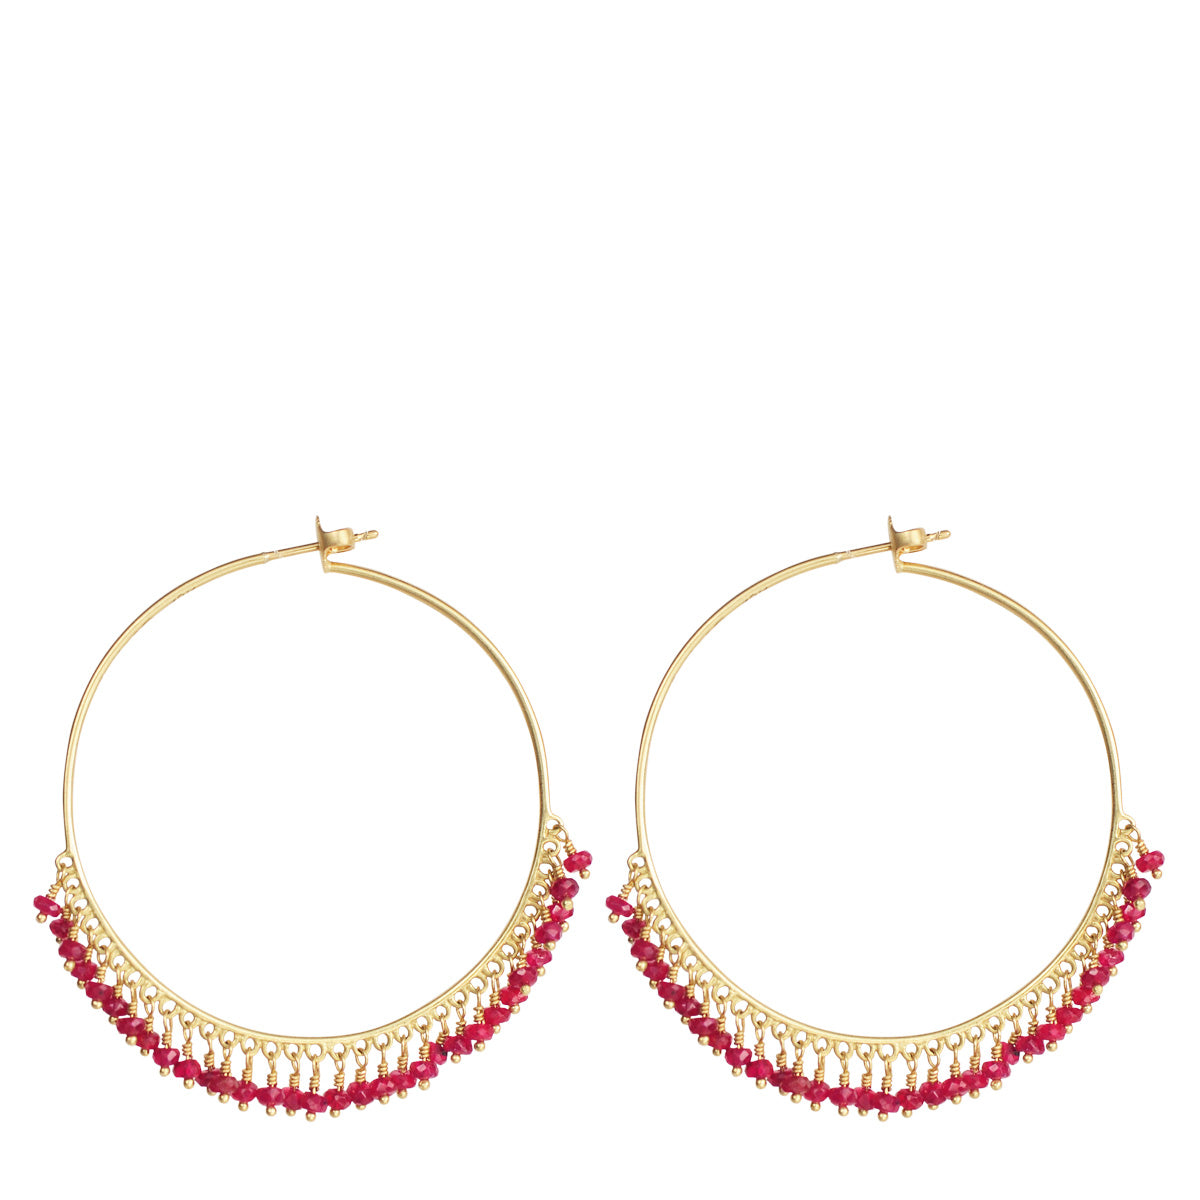 18K Gold Large Ruby Endless Hoop Earrings